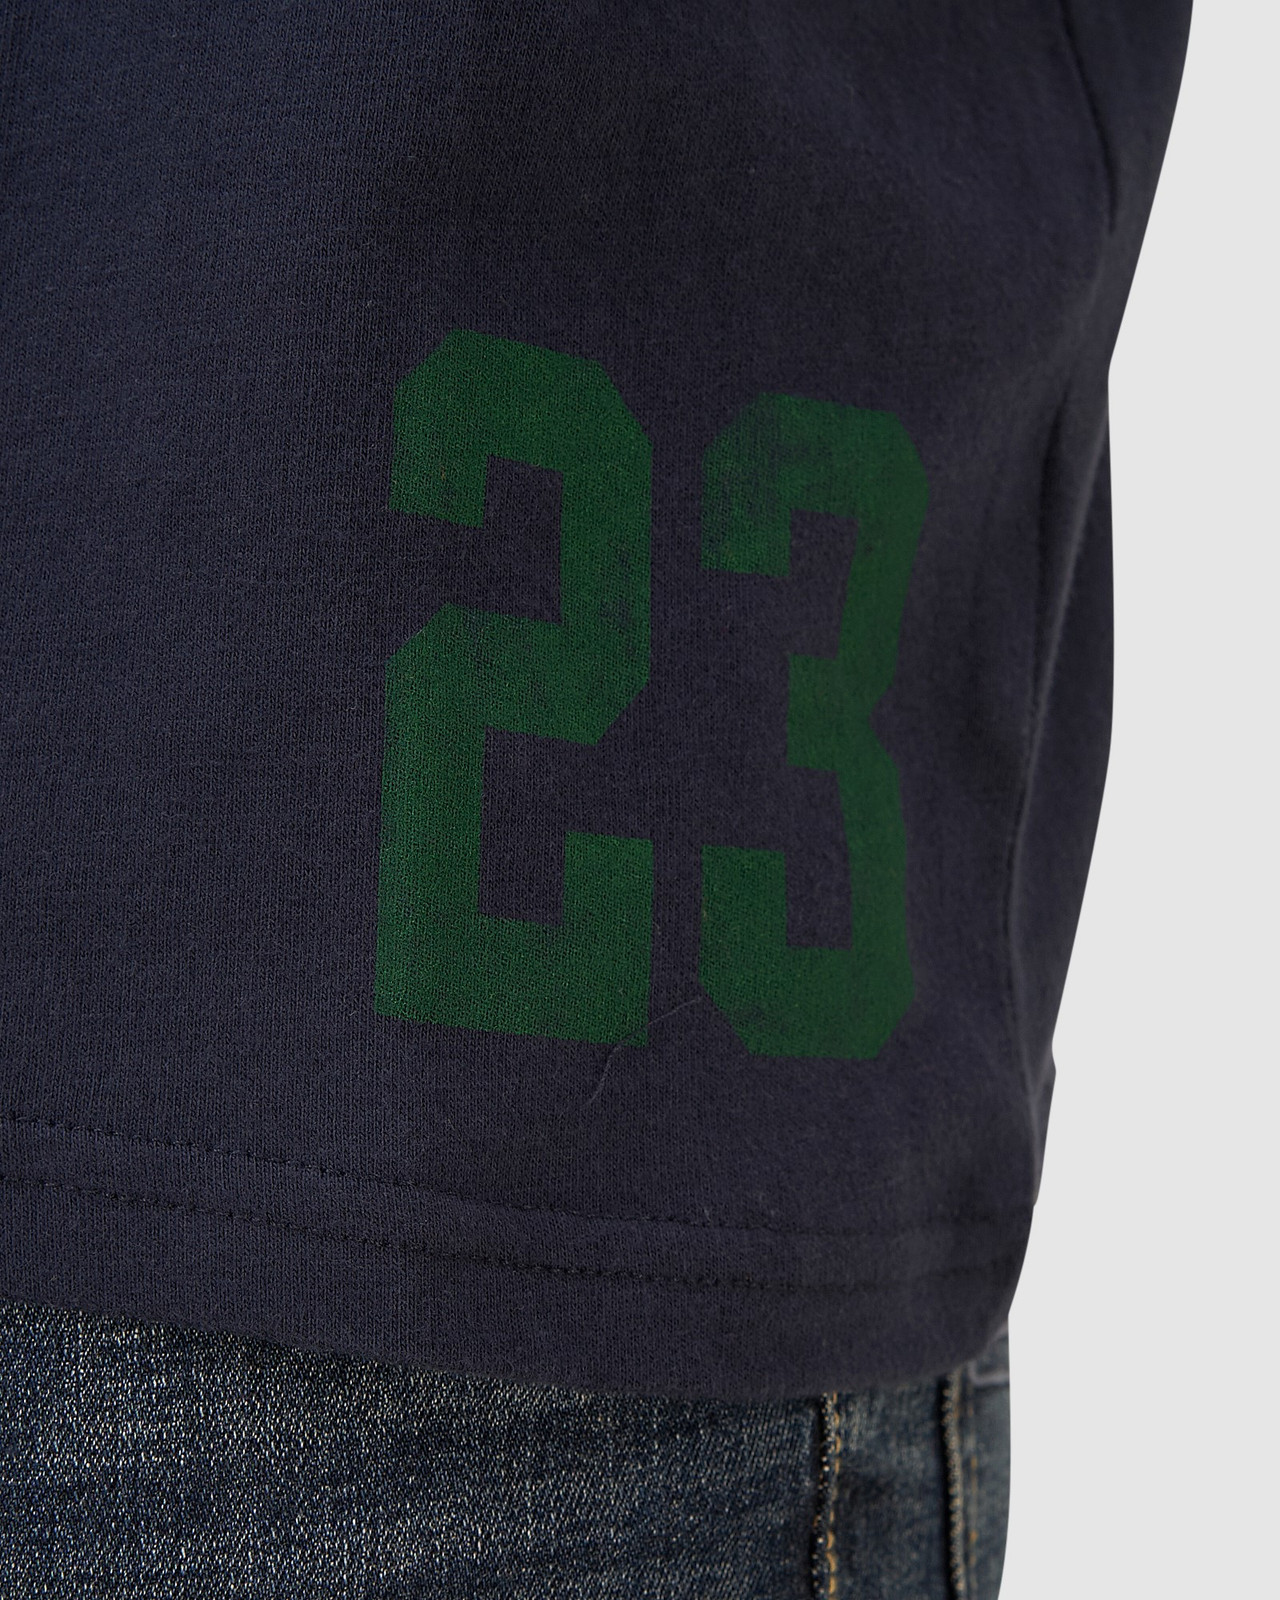 Superdry Mens T&F CLASSIC TEE Navy Printed T Shirts 6